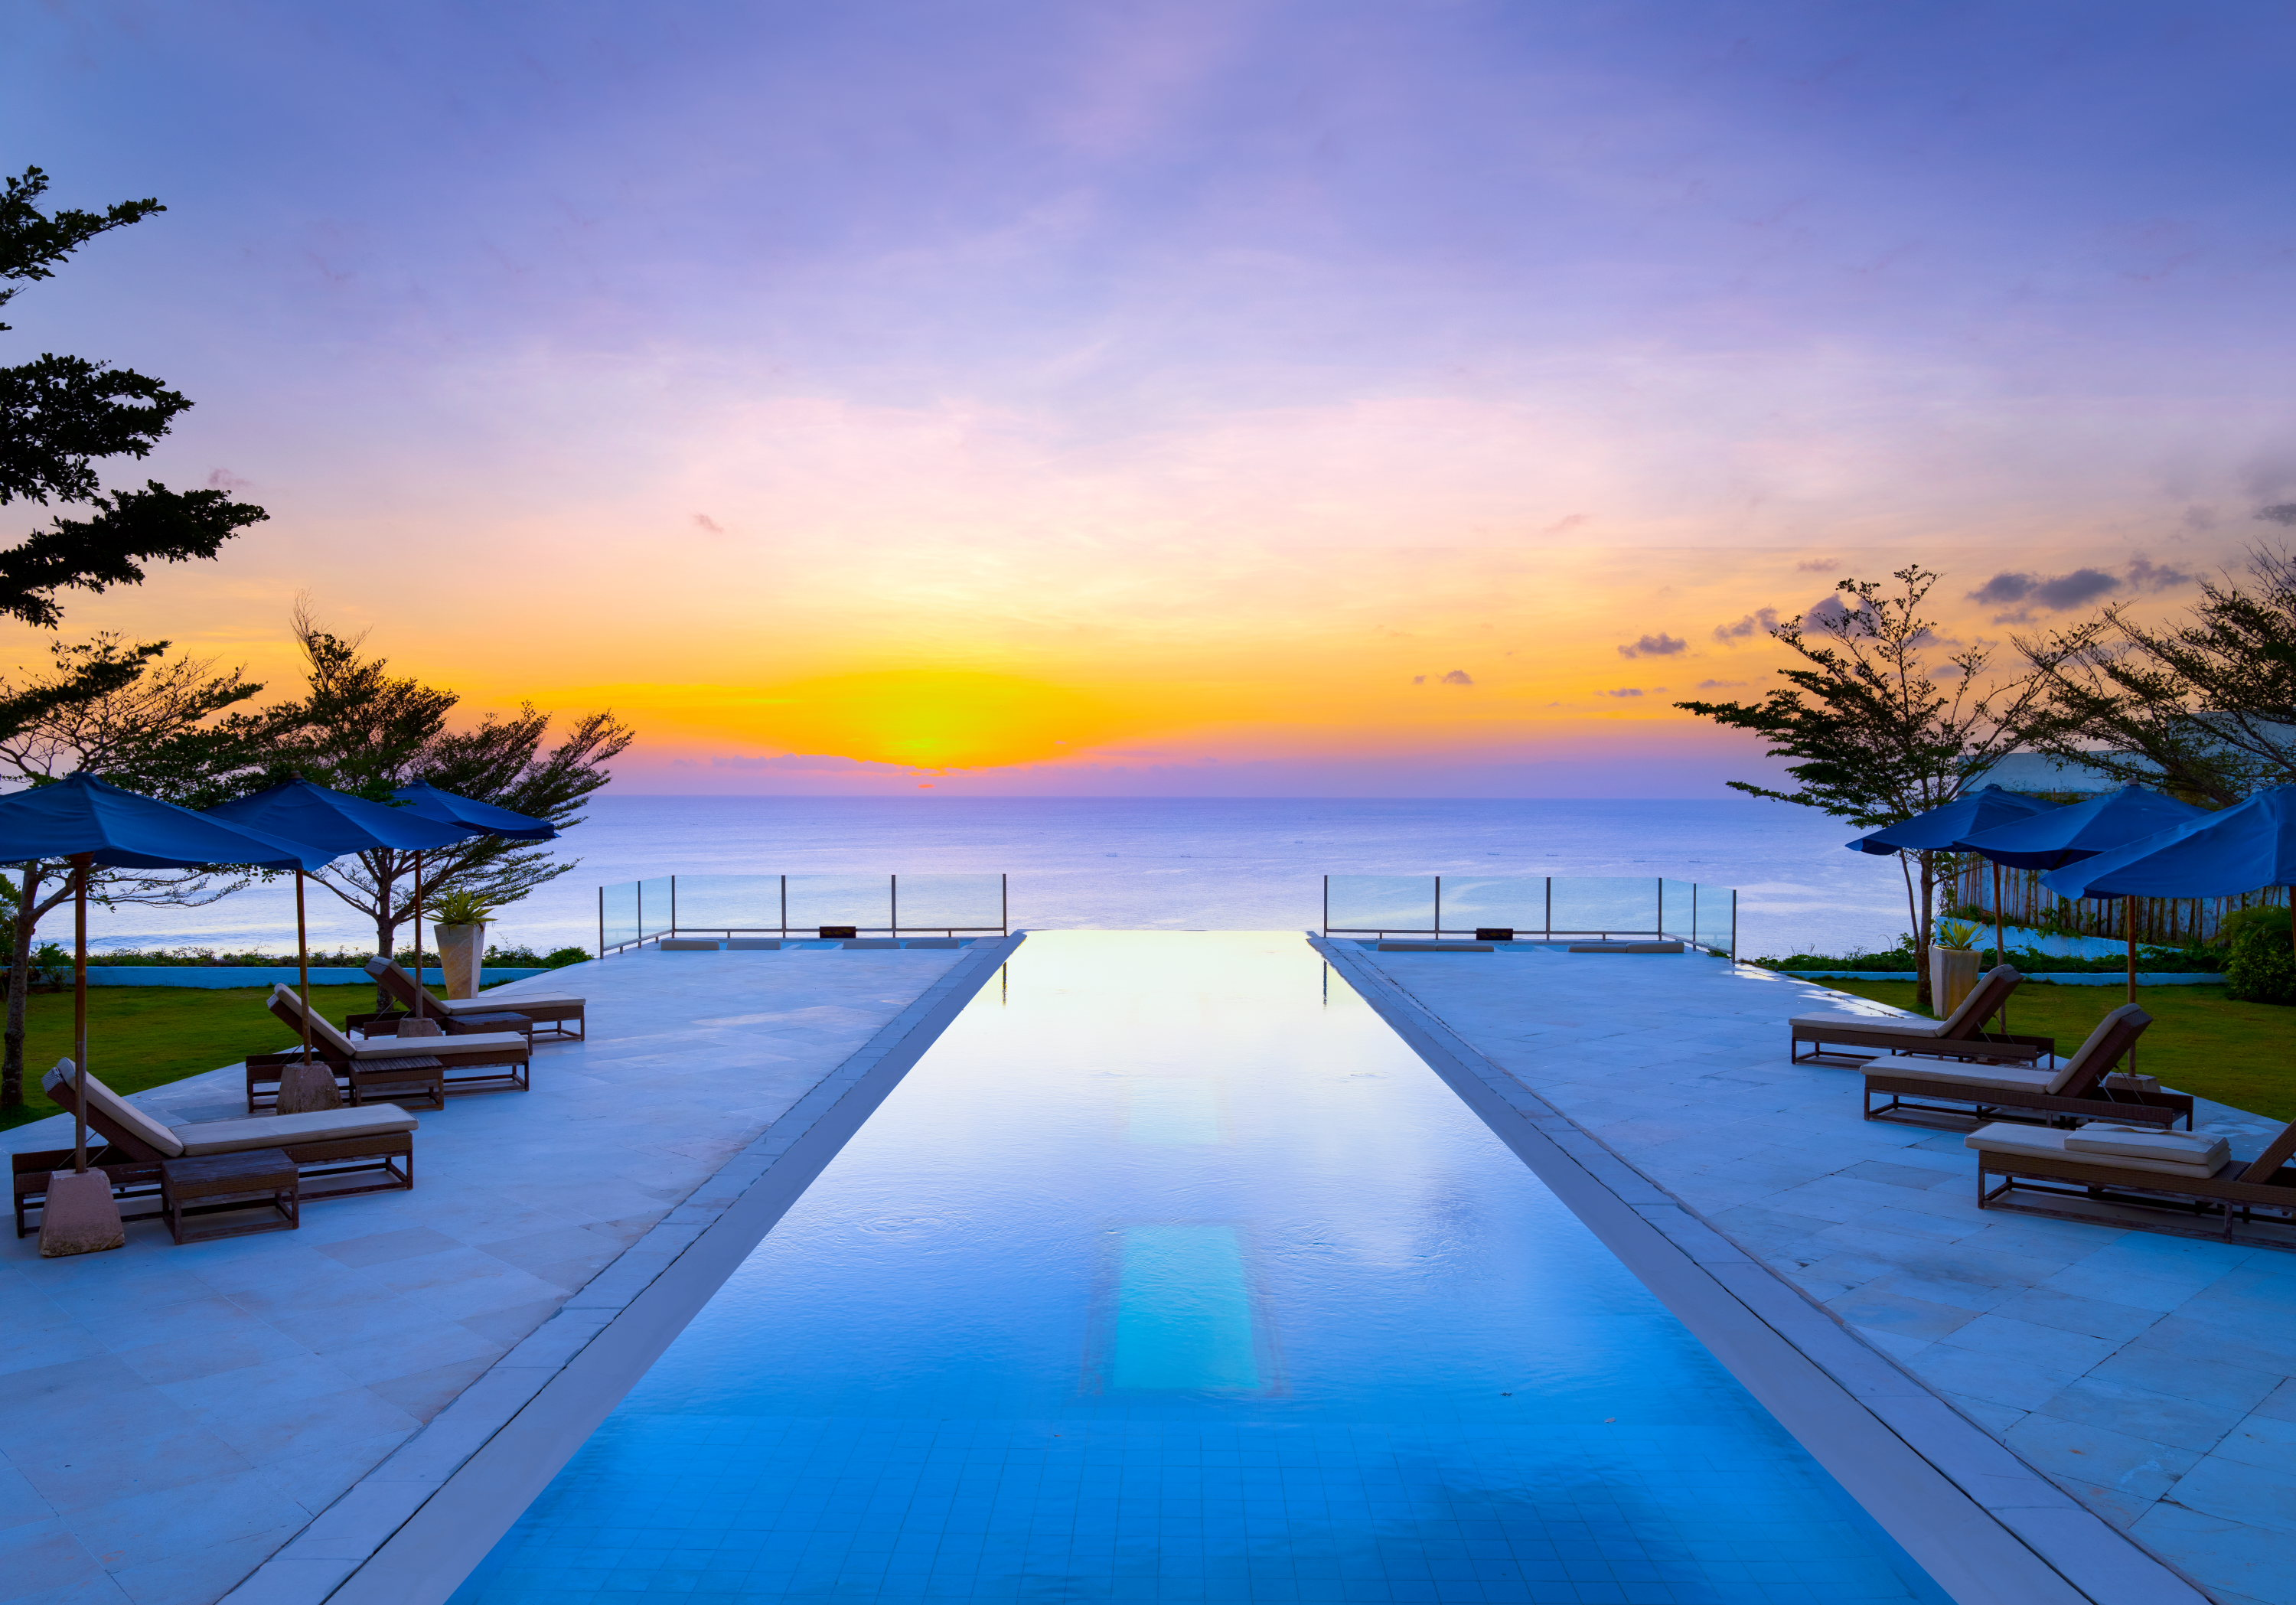 Venues for Sunset Time in Bali for Every Budget in villa